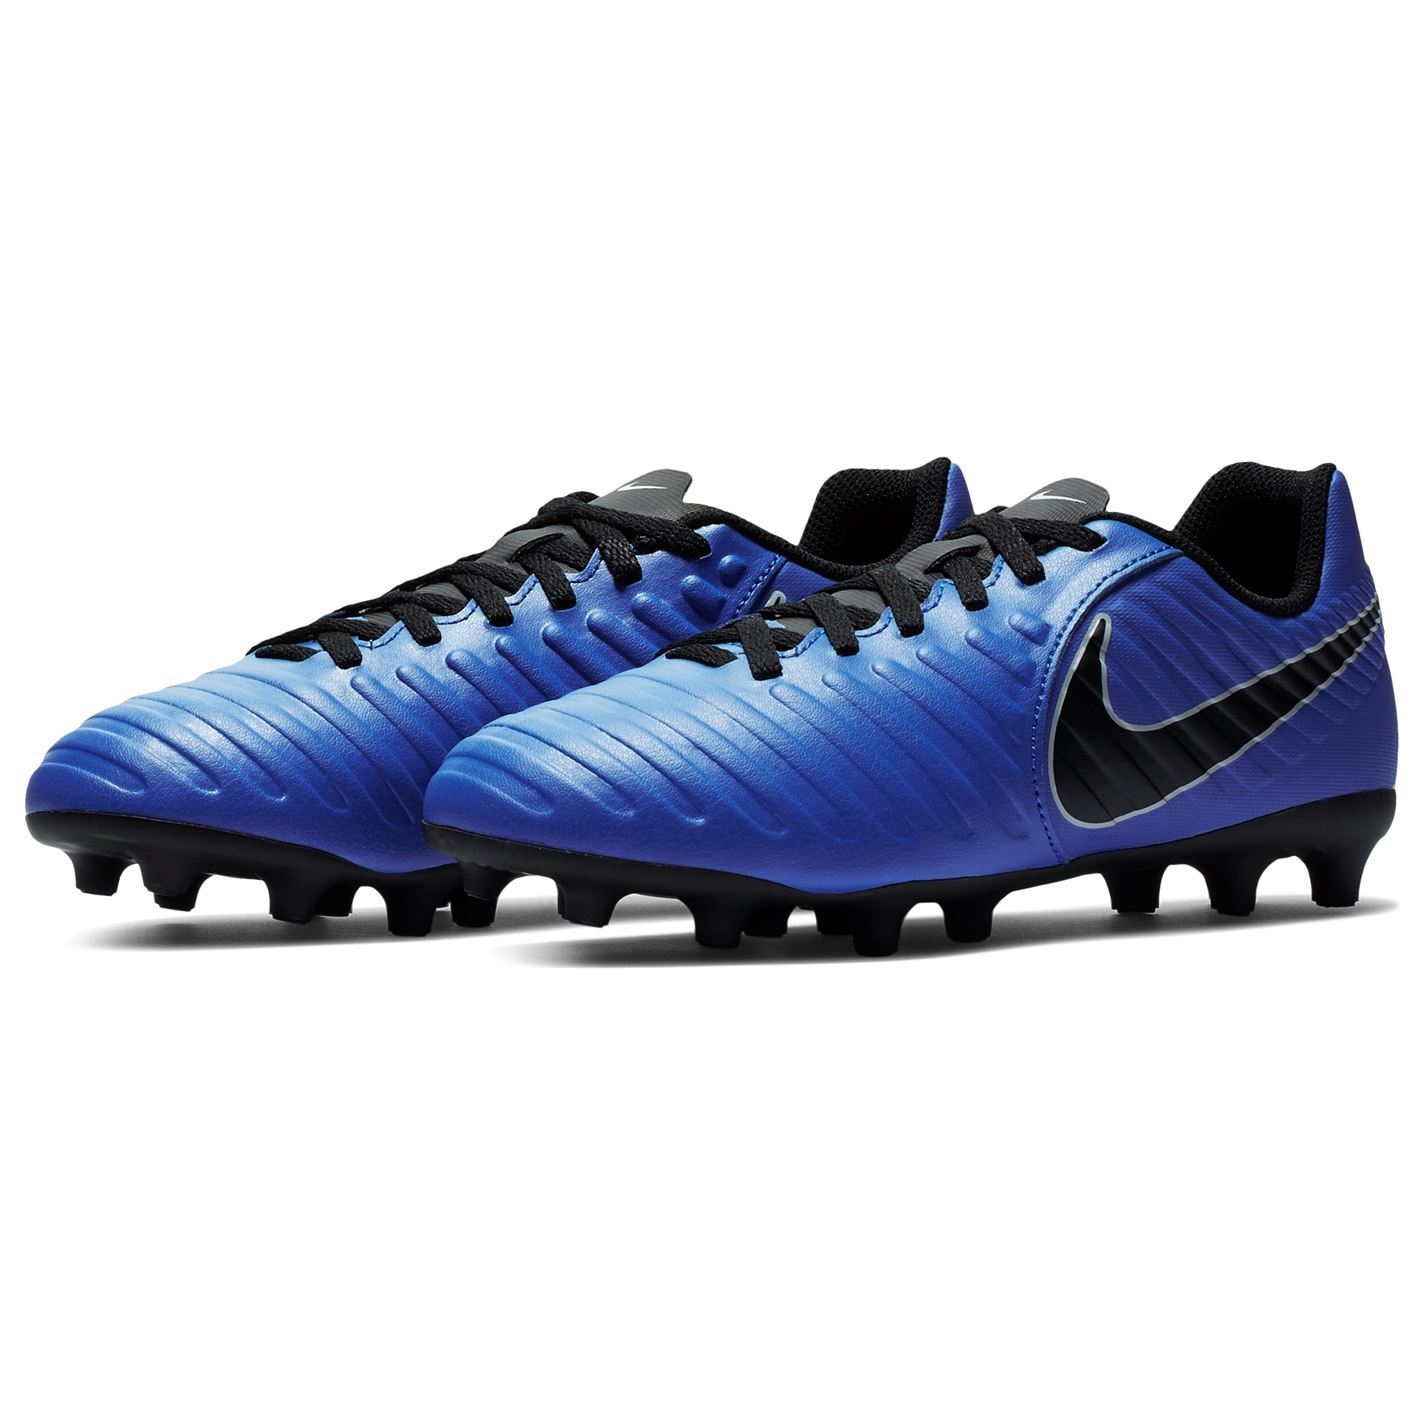 752e1b55f ... Nike Tiempo Legend Club FG Firm Ground Football Boots Juniors Soccer  Cleats